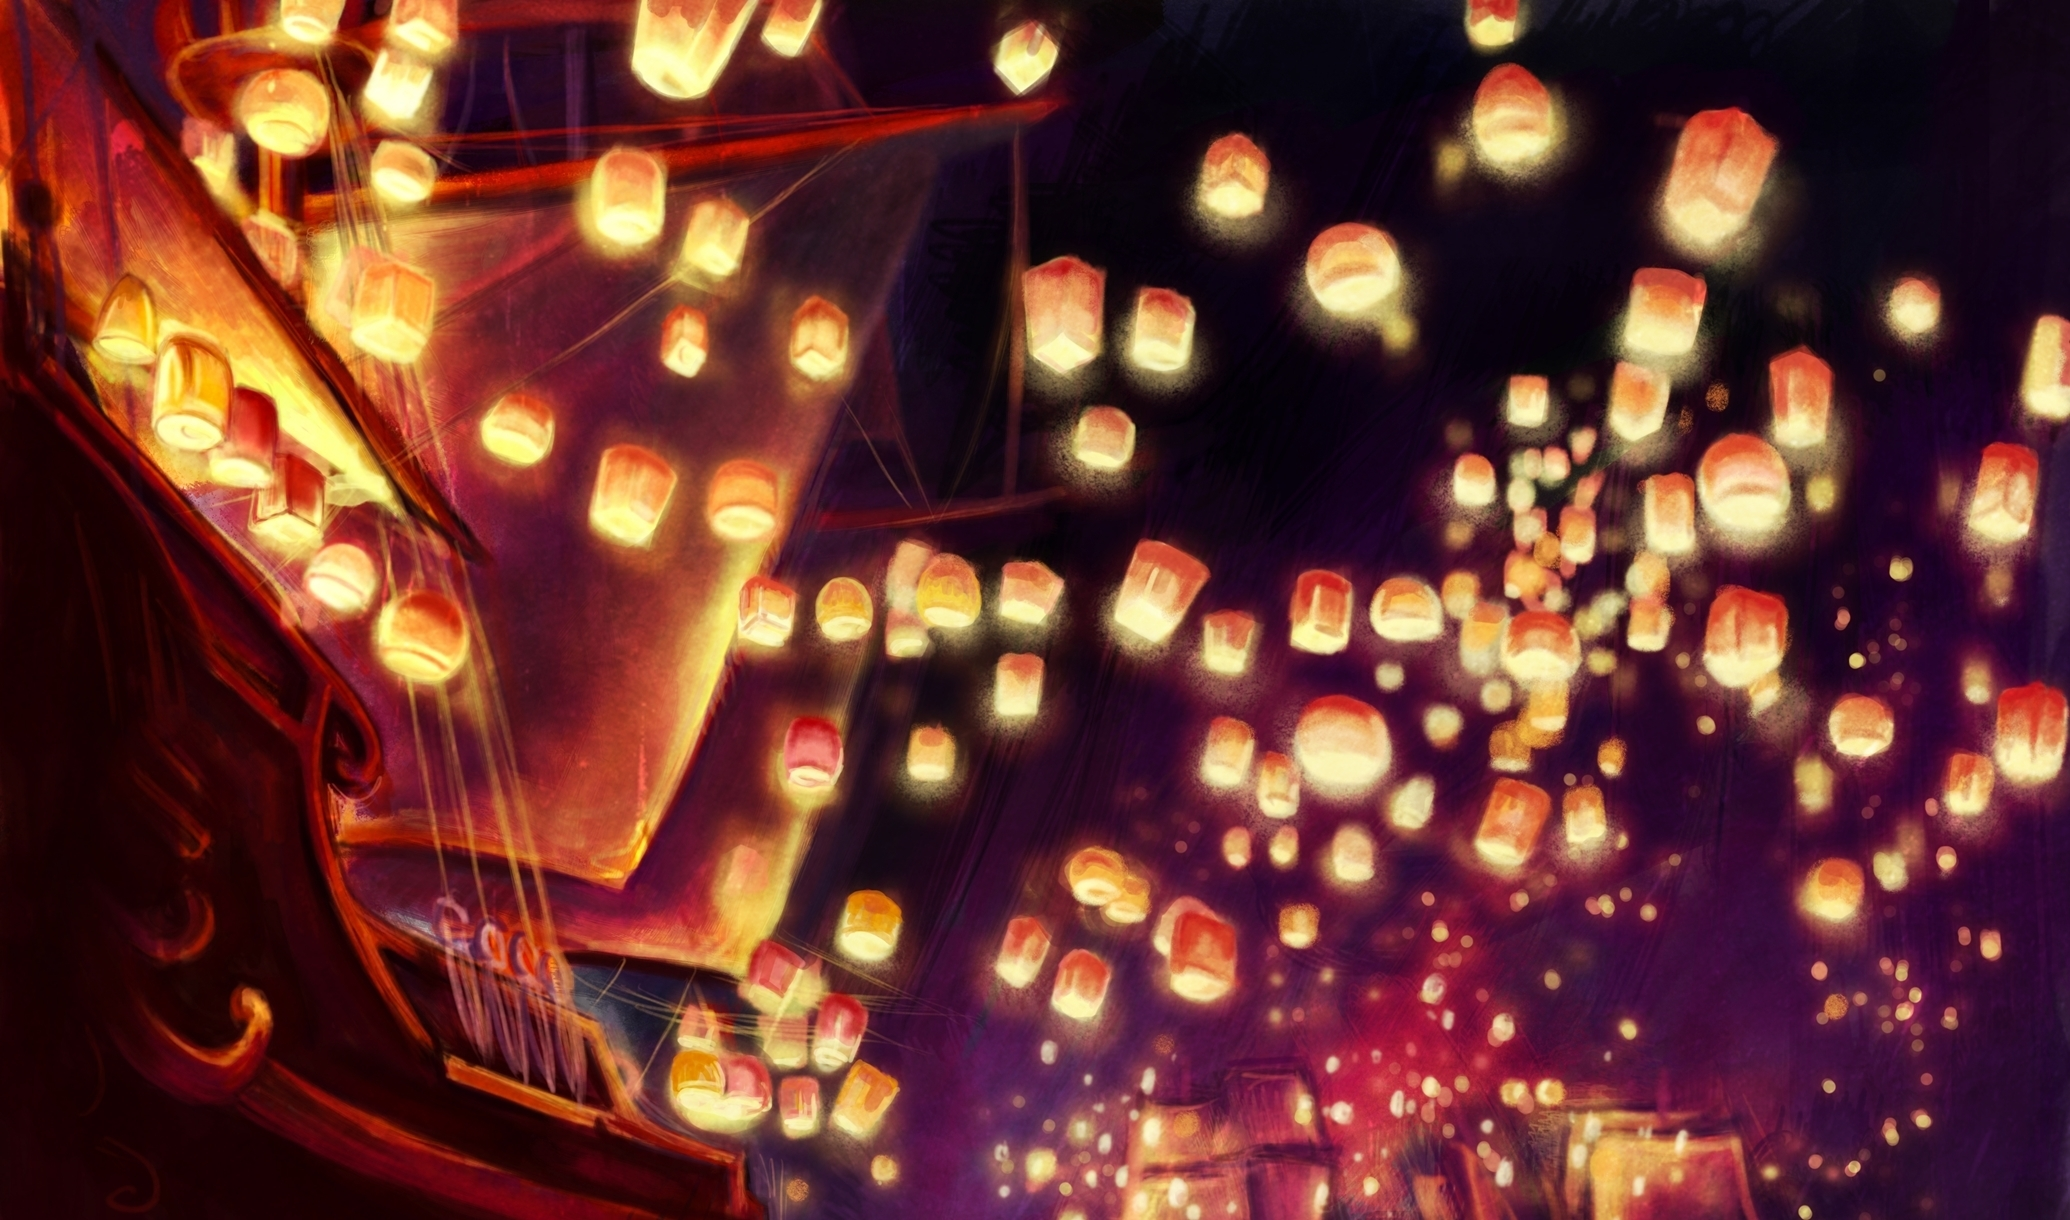 Sky Lanterns Wallpaper Iphone Tangled Full Hd Wallpaper And Background Image 2070x1220